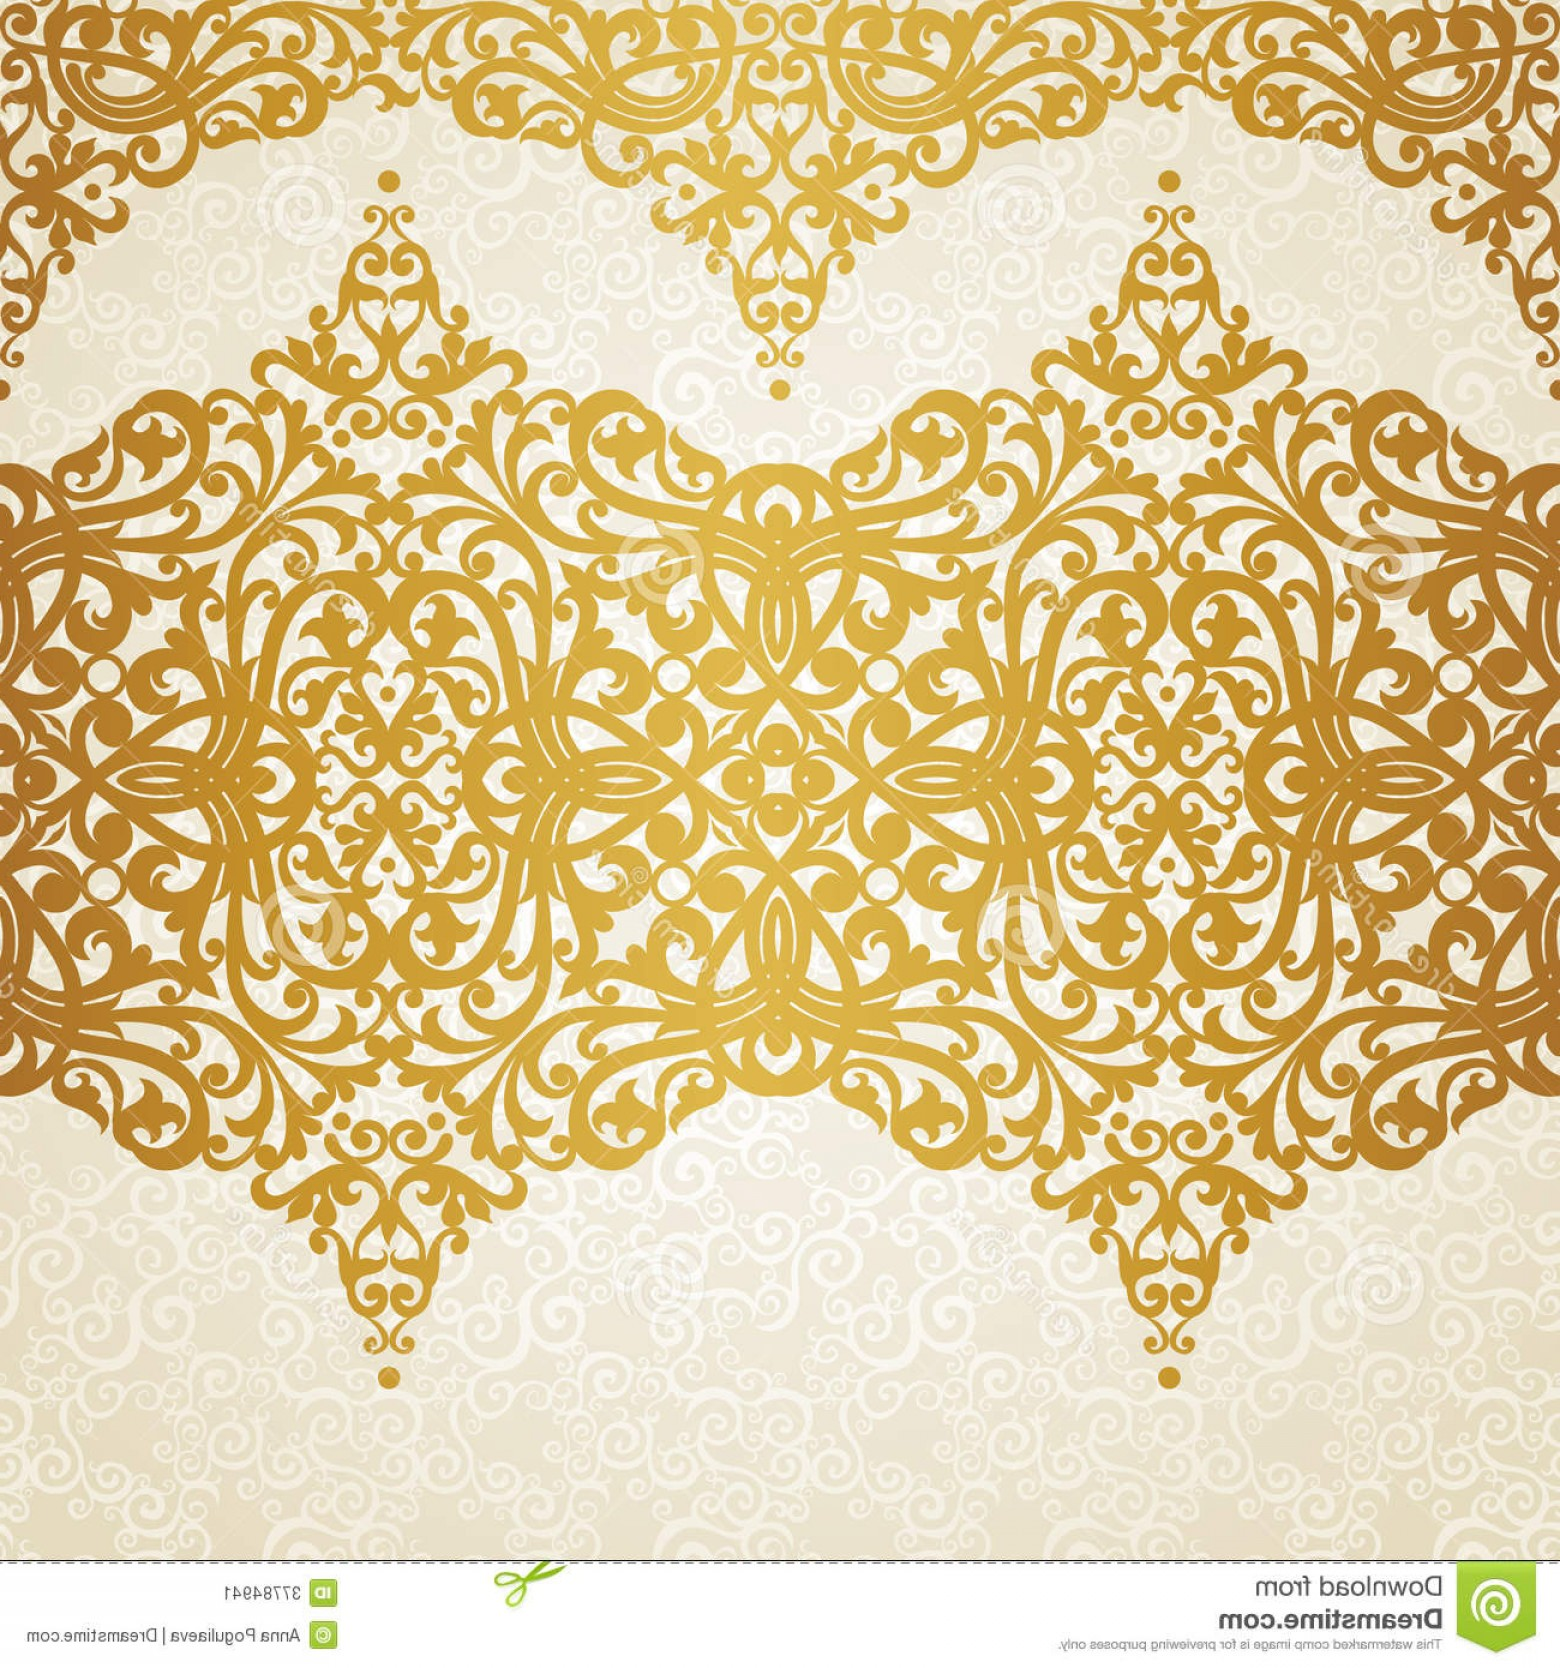 Victorian Style Frame Vector: Stock Image Vector Seamless Border Victorian Style Element Design You Can Place Text Empty Frame Can Be Used Image